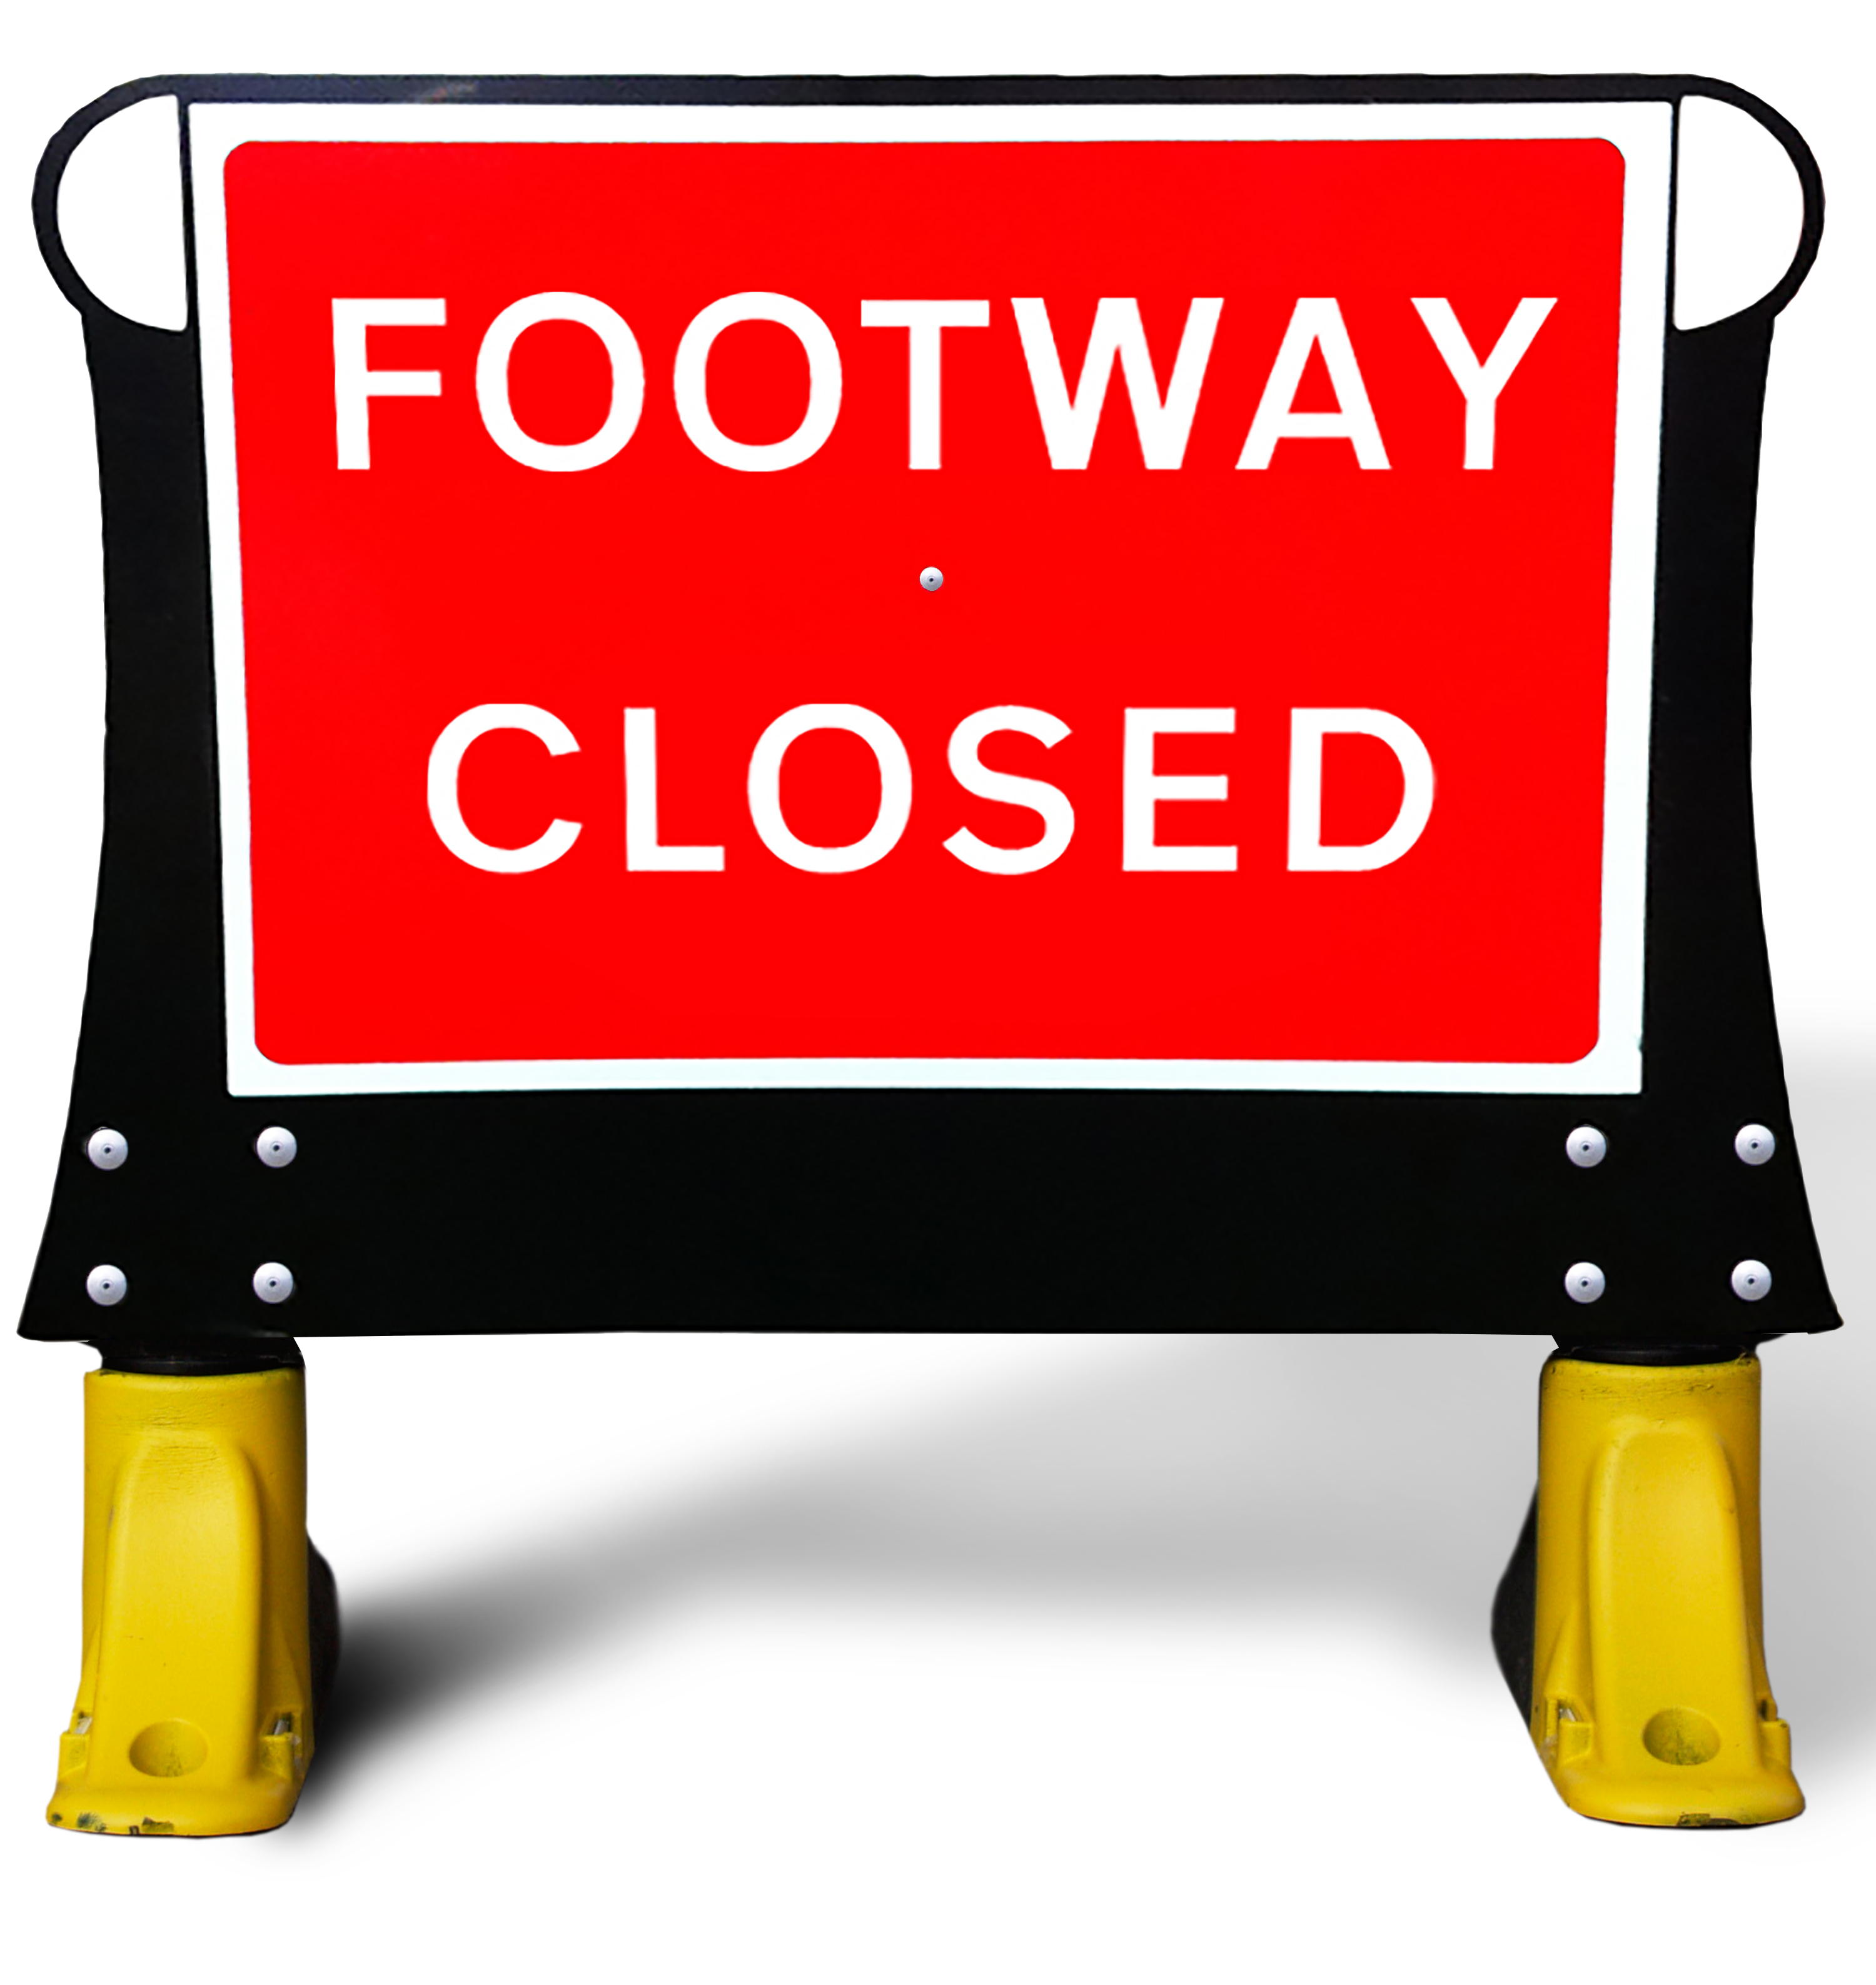 Footway Closed X.